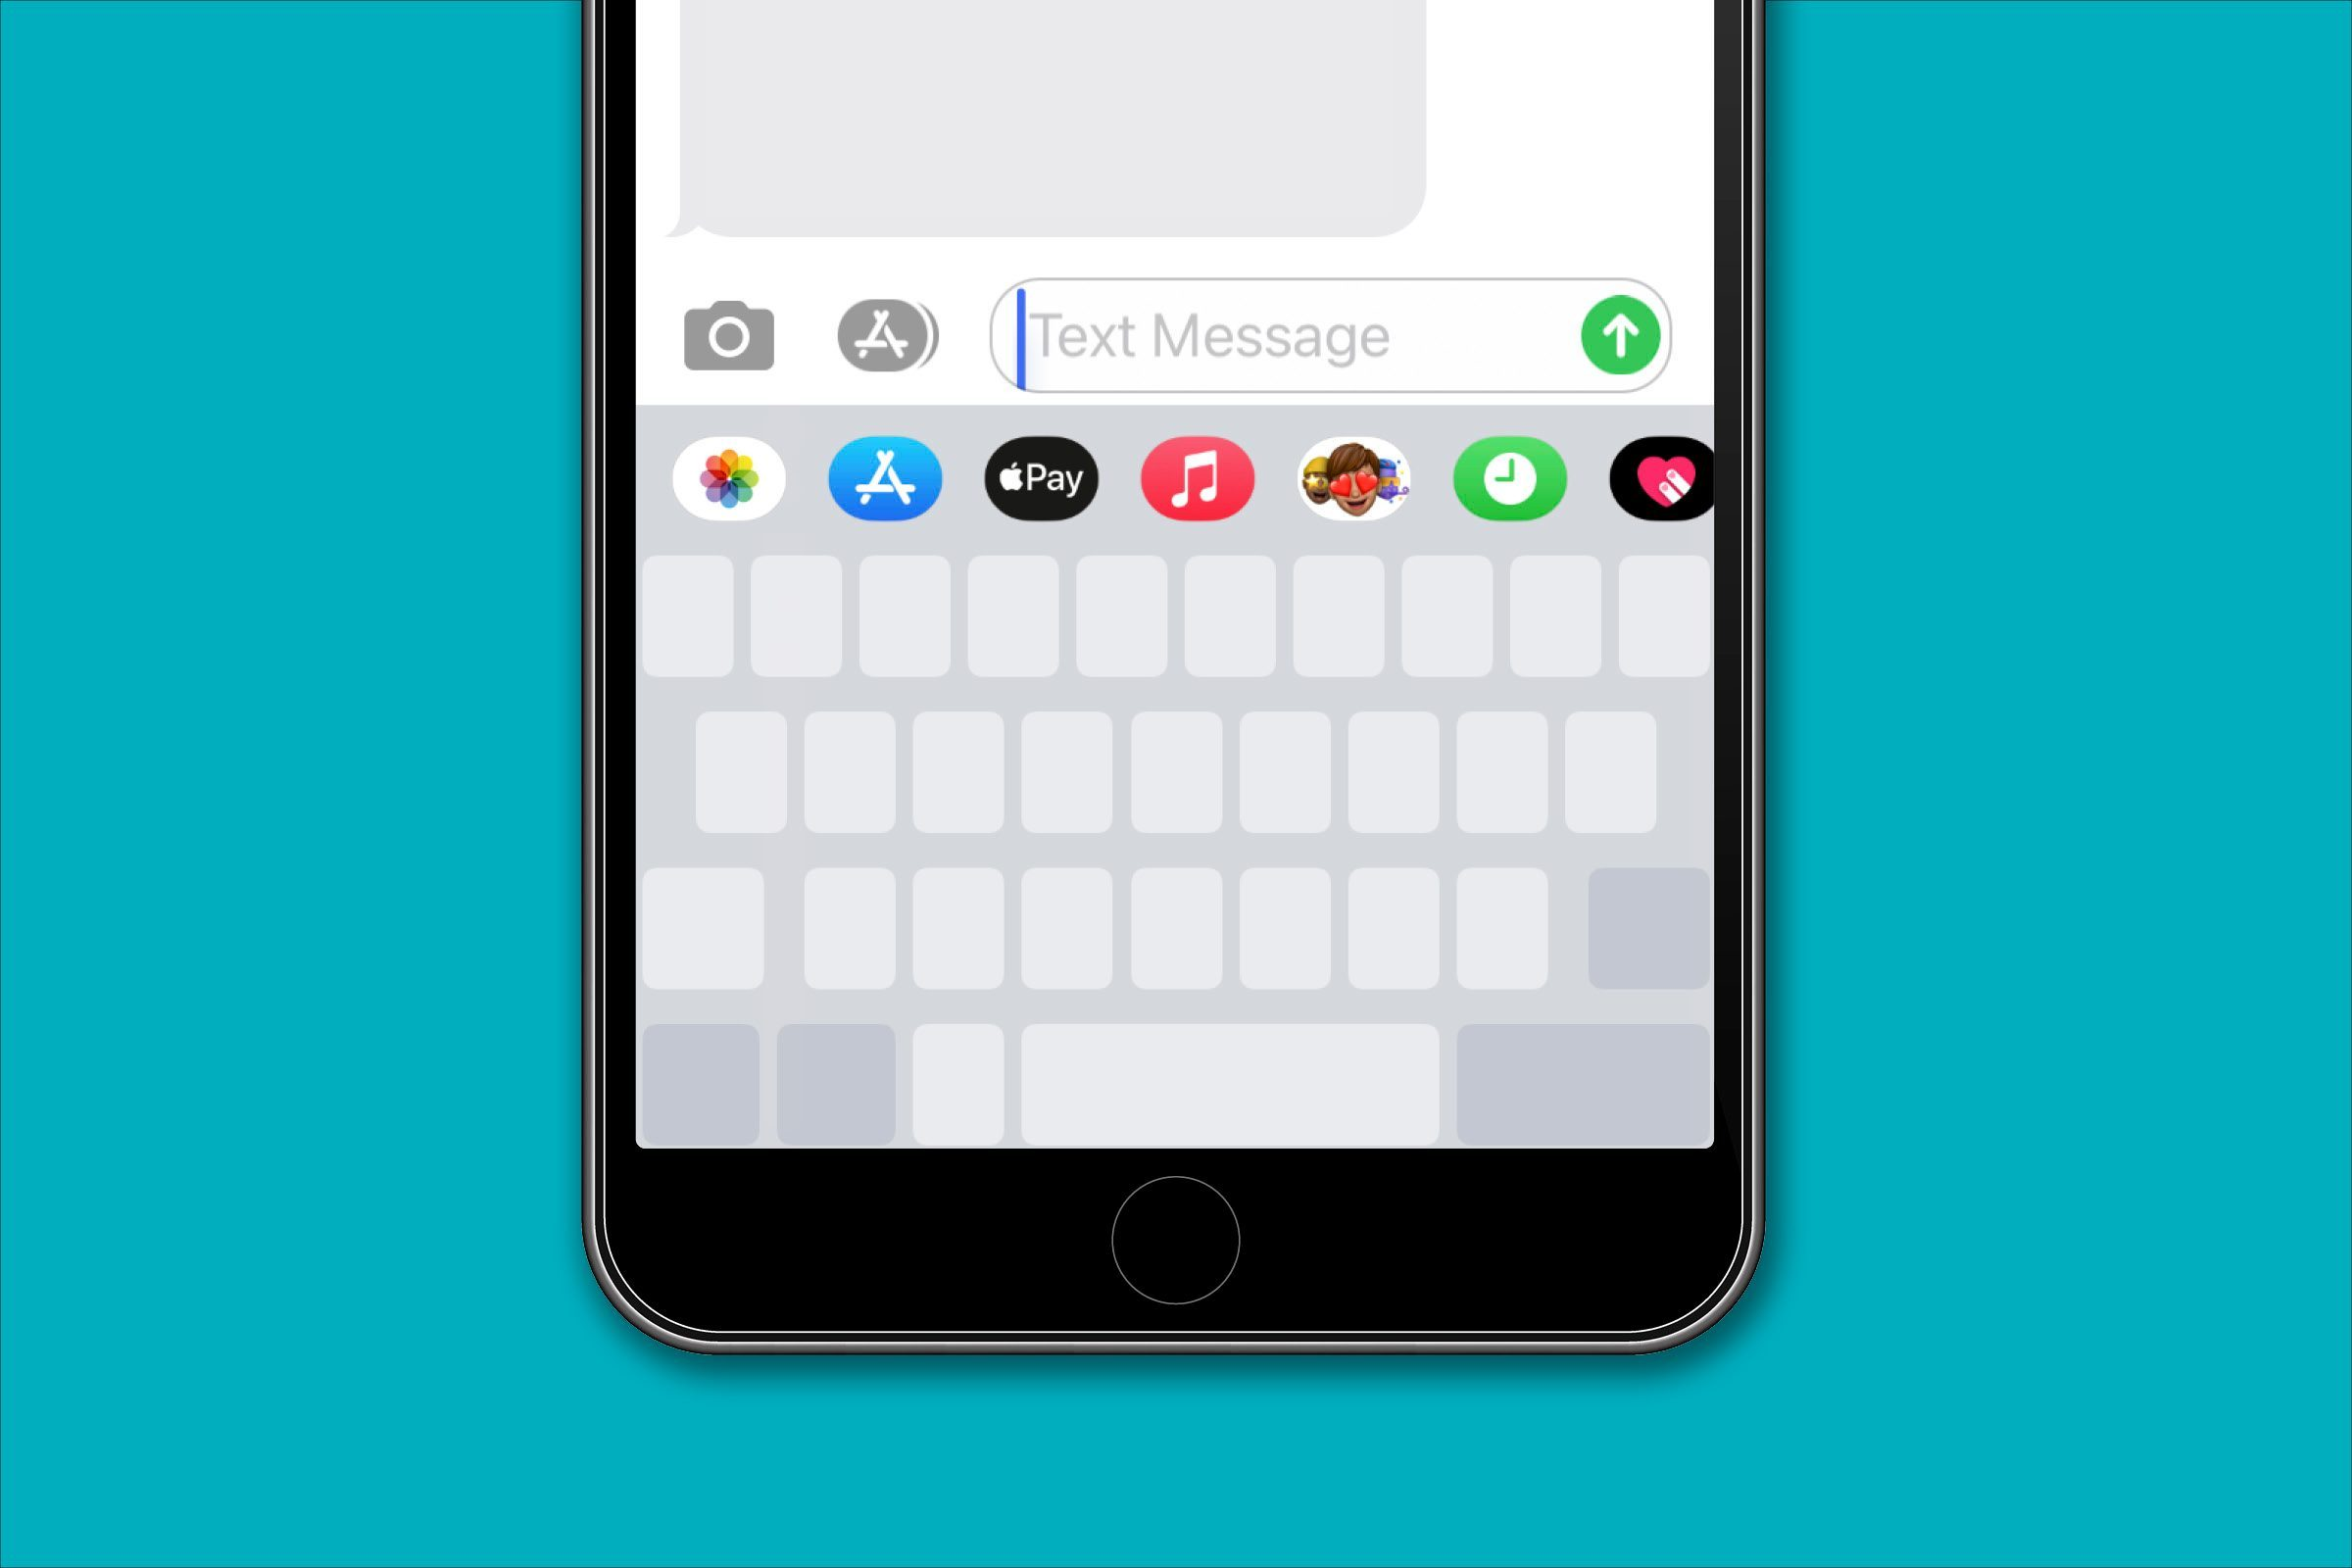 Make your iPhone keyboard function as a trackpad